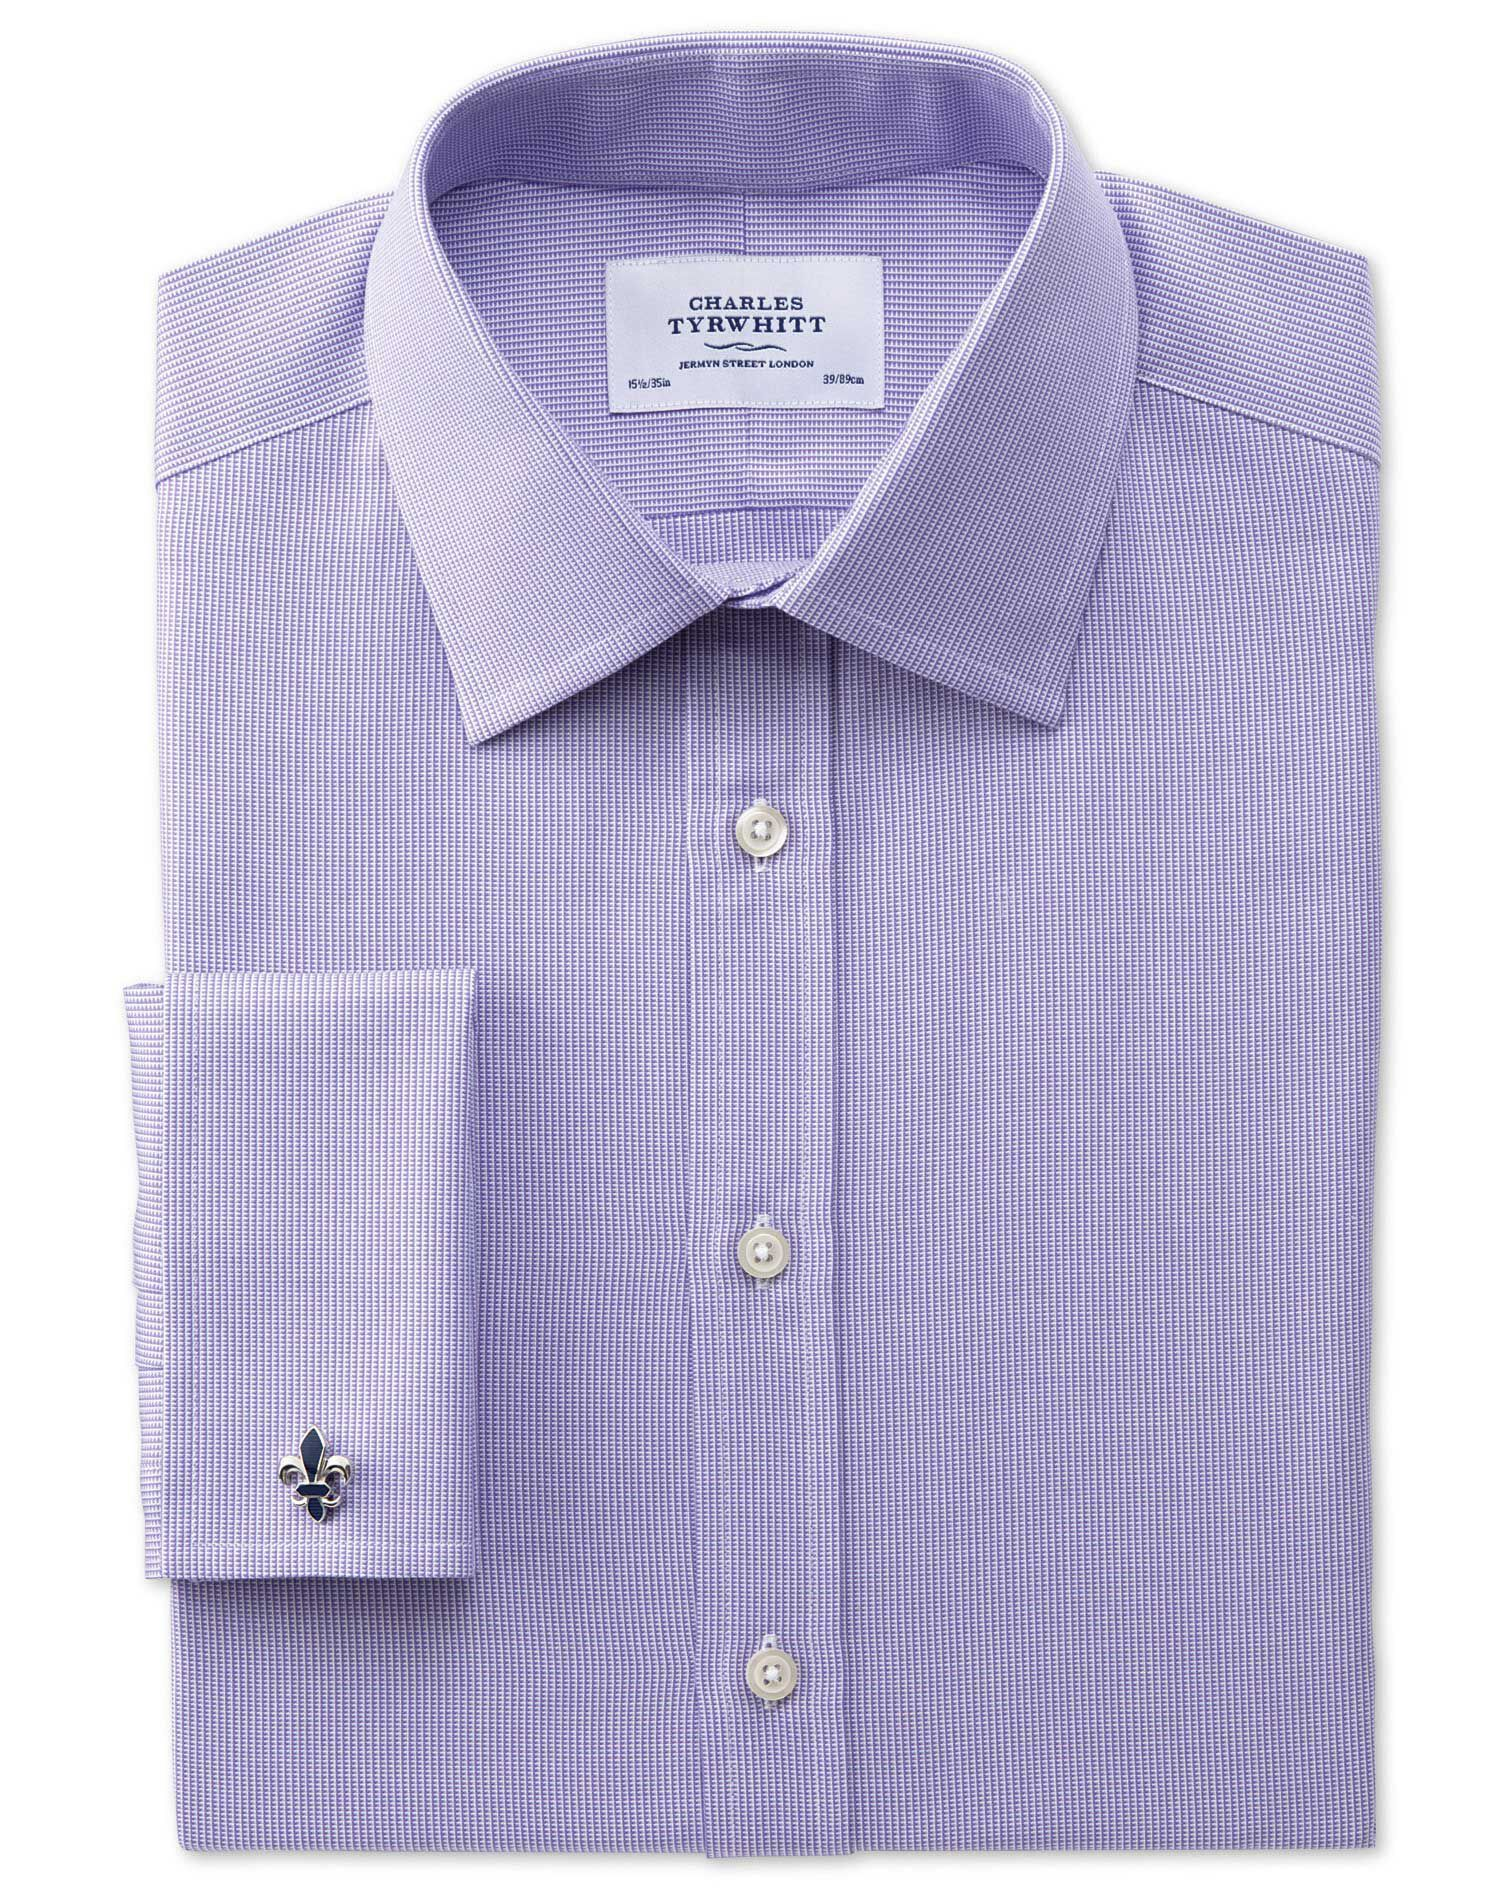 Extra Slim Fit Oxford Lilac Cotton Formal Shirt Double Cuff Size 16/36 by Charles Tyrwhitt